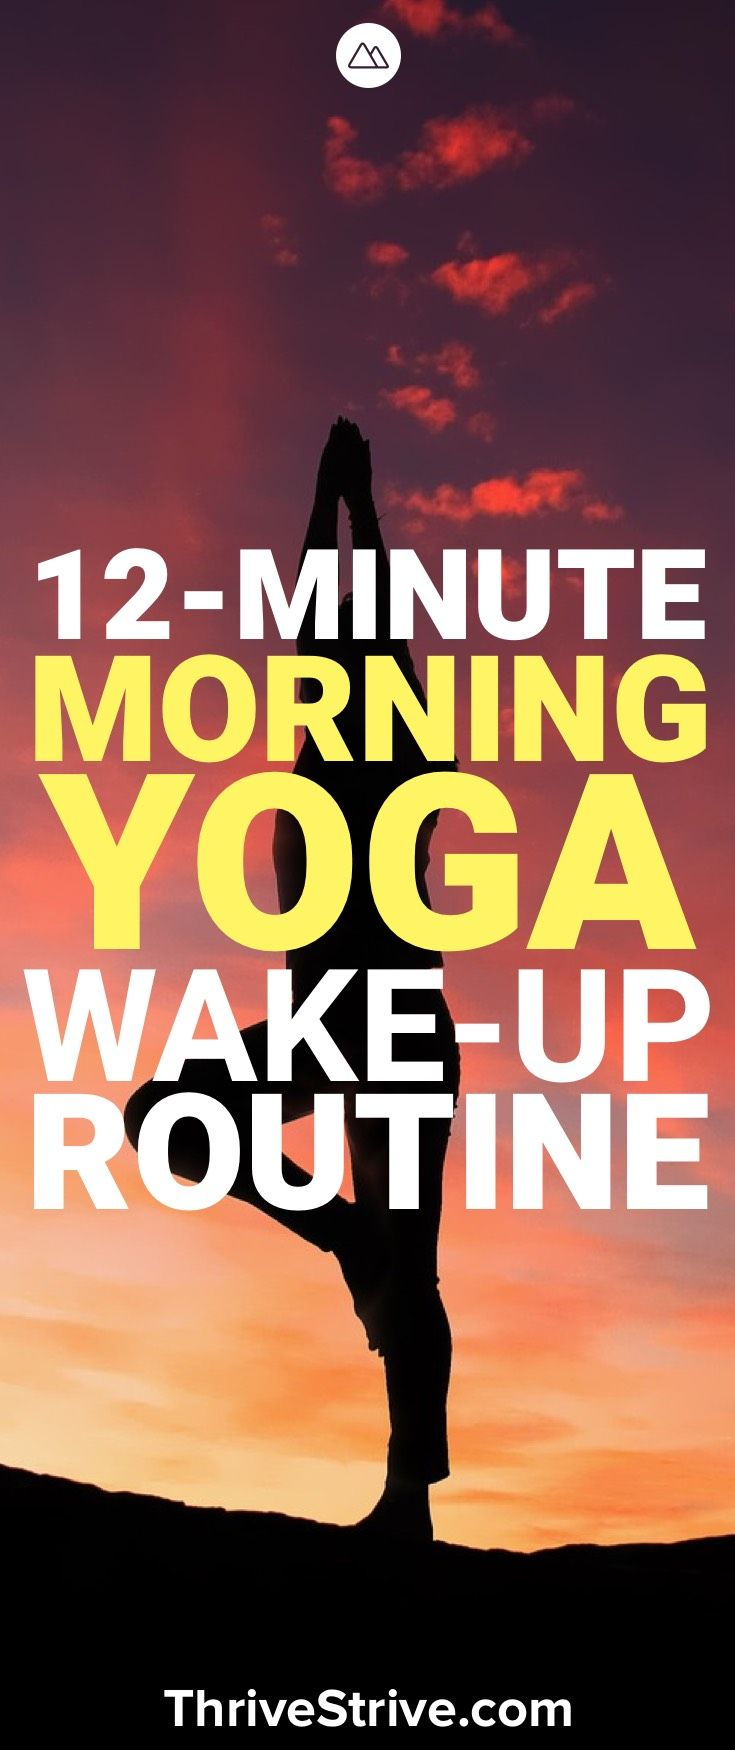 Going to try this after my morning jogs